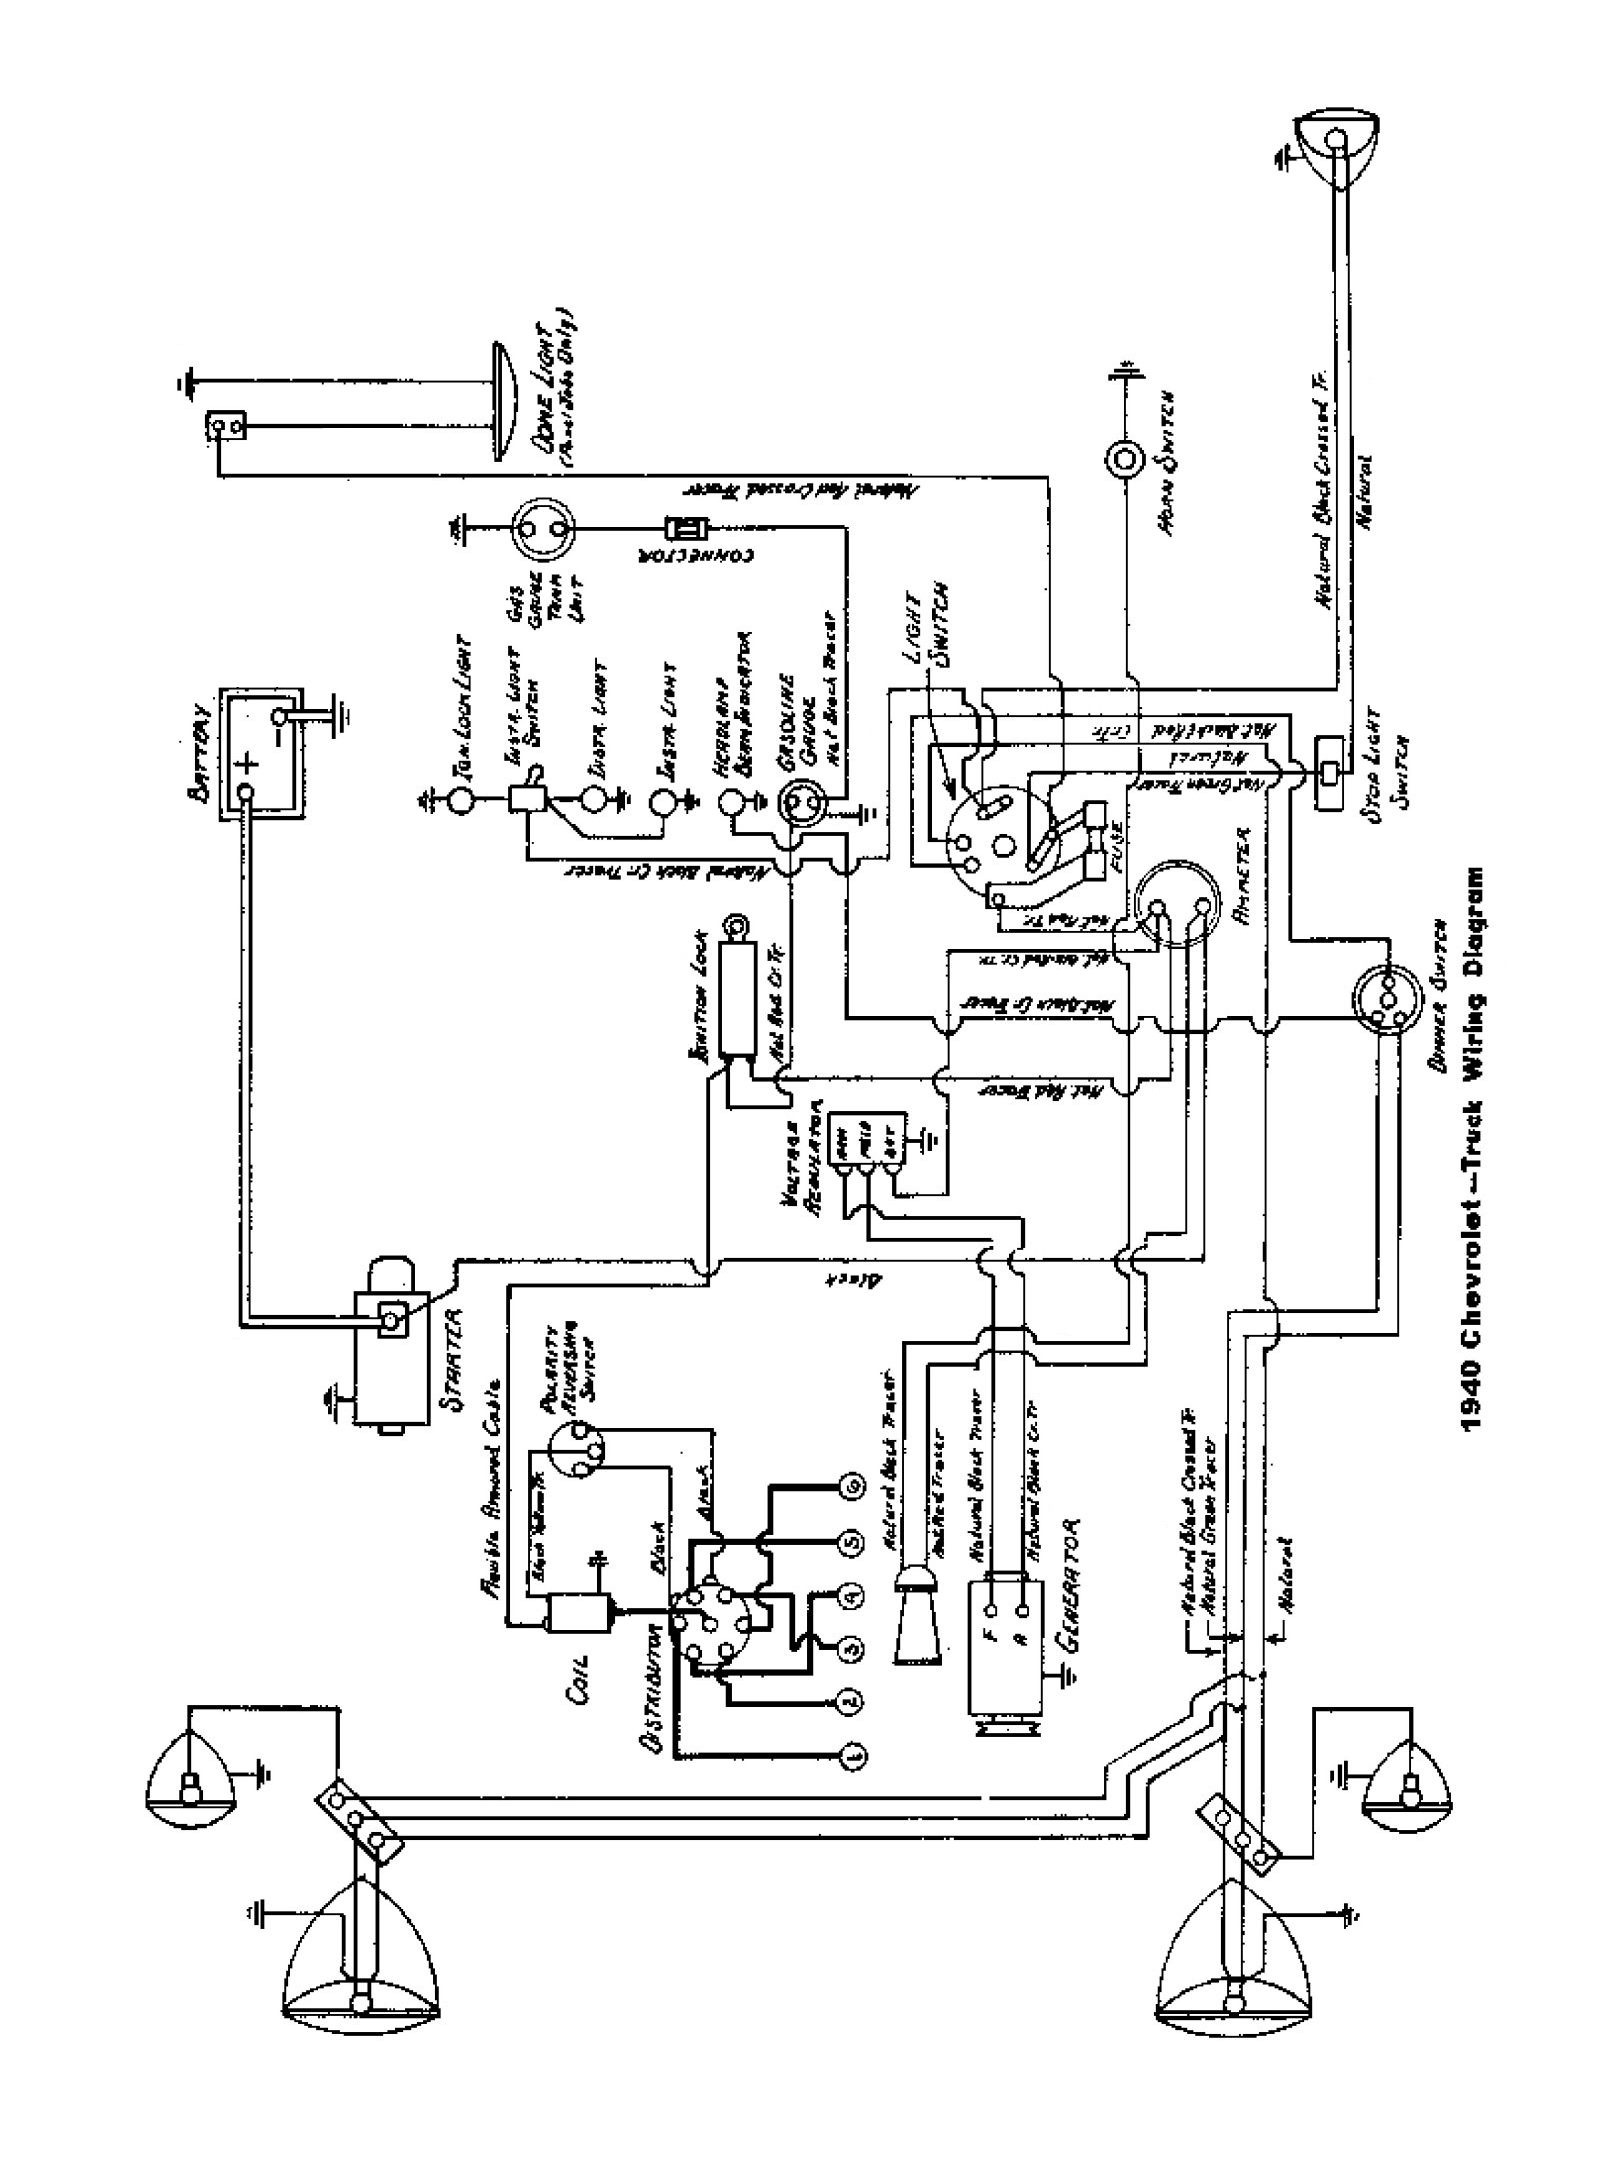 farmall international tractor wiring diagram with Wiring on Hitachi Alternator Wiring Diagram For Farmall Cub together with Farmall F4 Mag o Parts Diagram in addition Farmall 100 Parts Diagram further Kubota Hydraulics Filter Diagram also Wiring Harness For Farmall M.